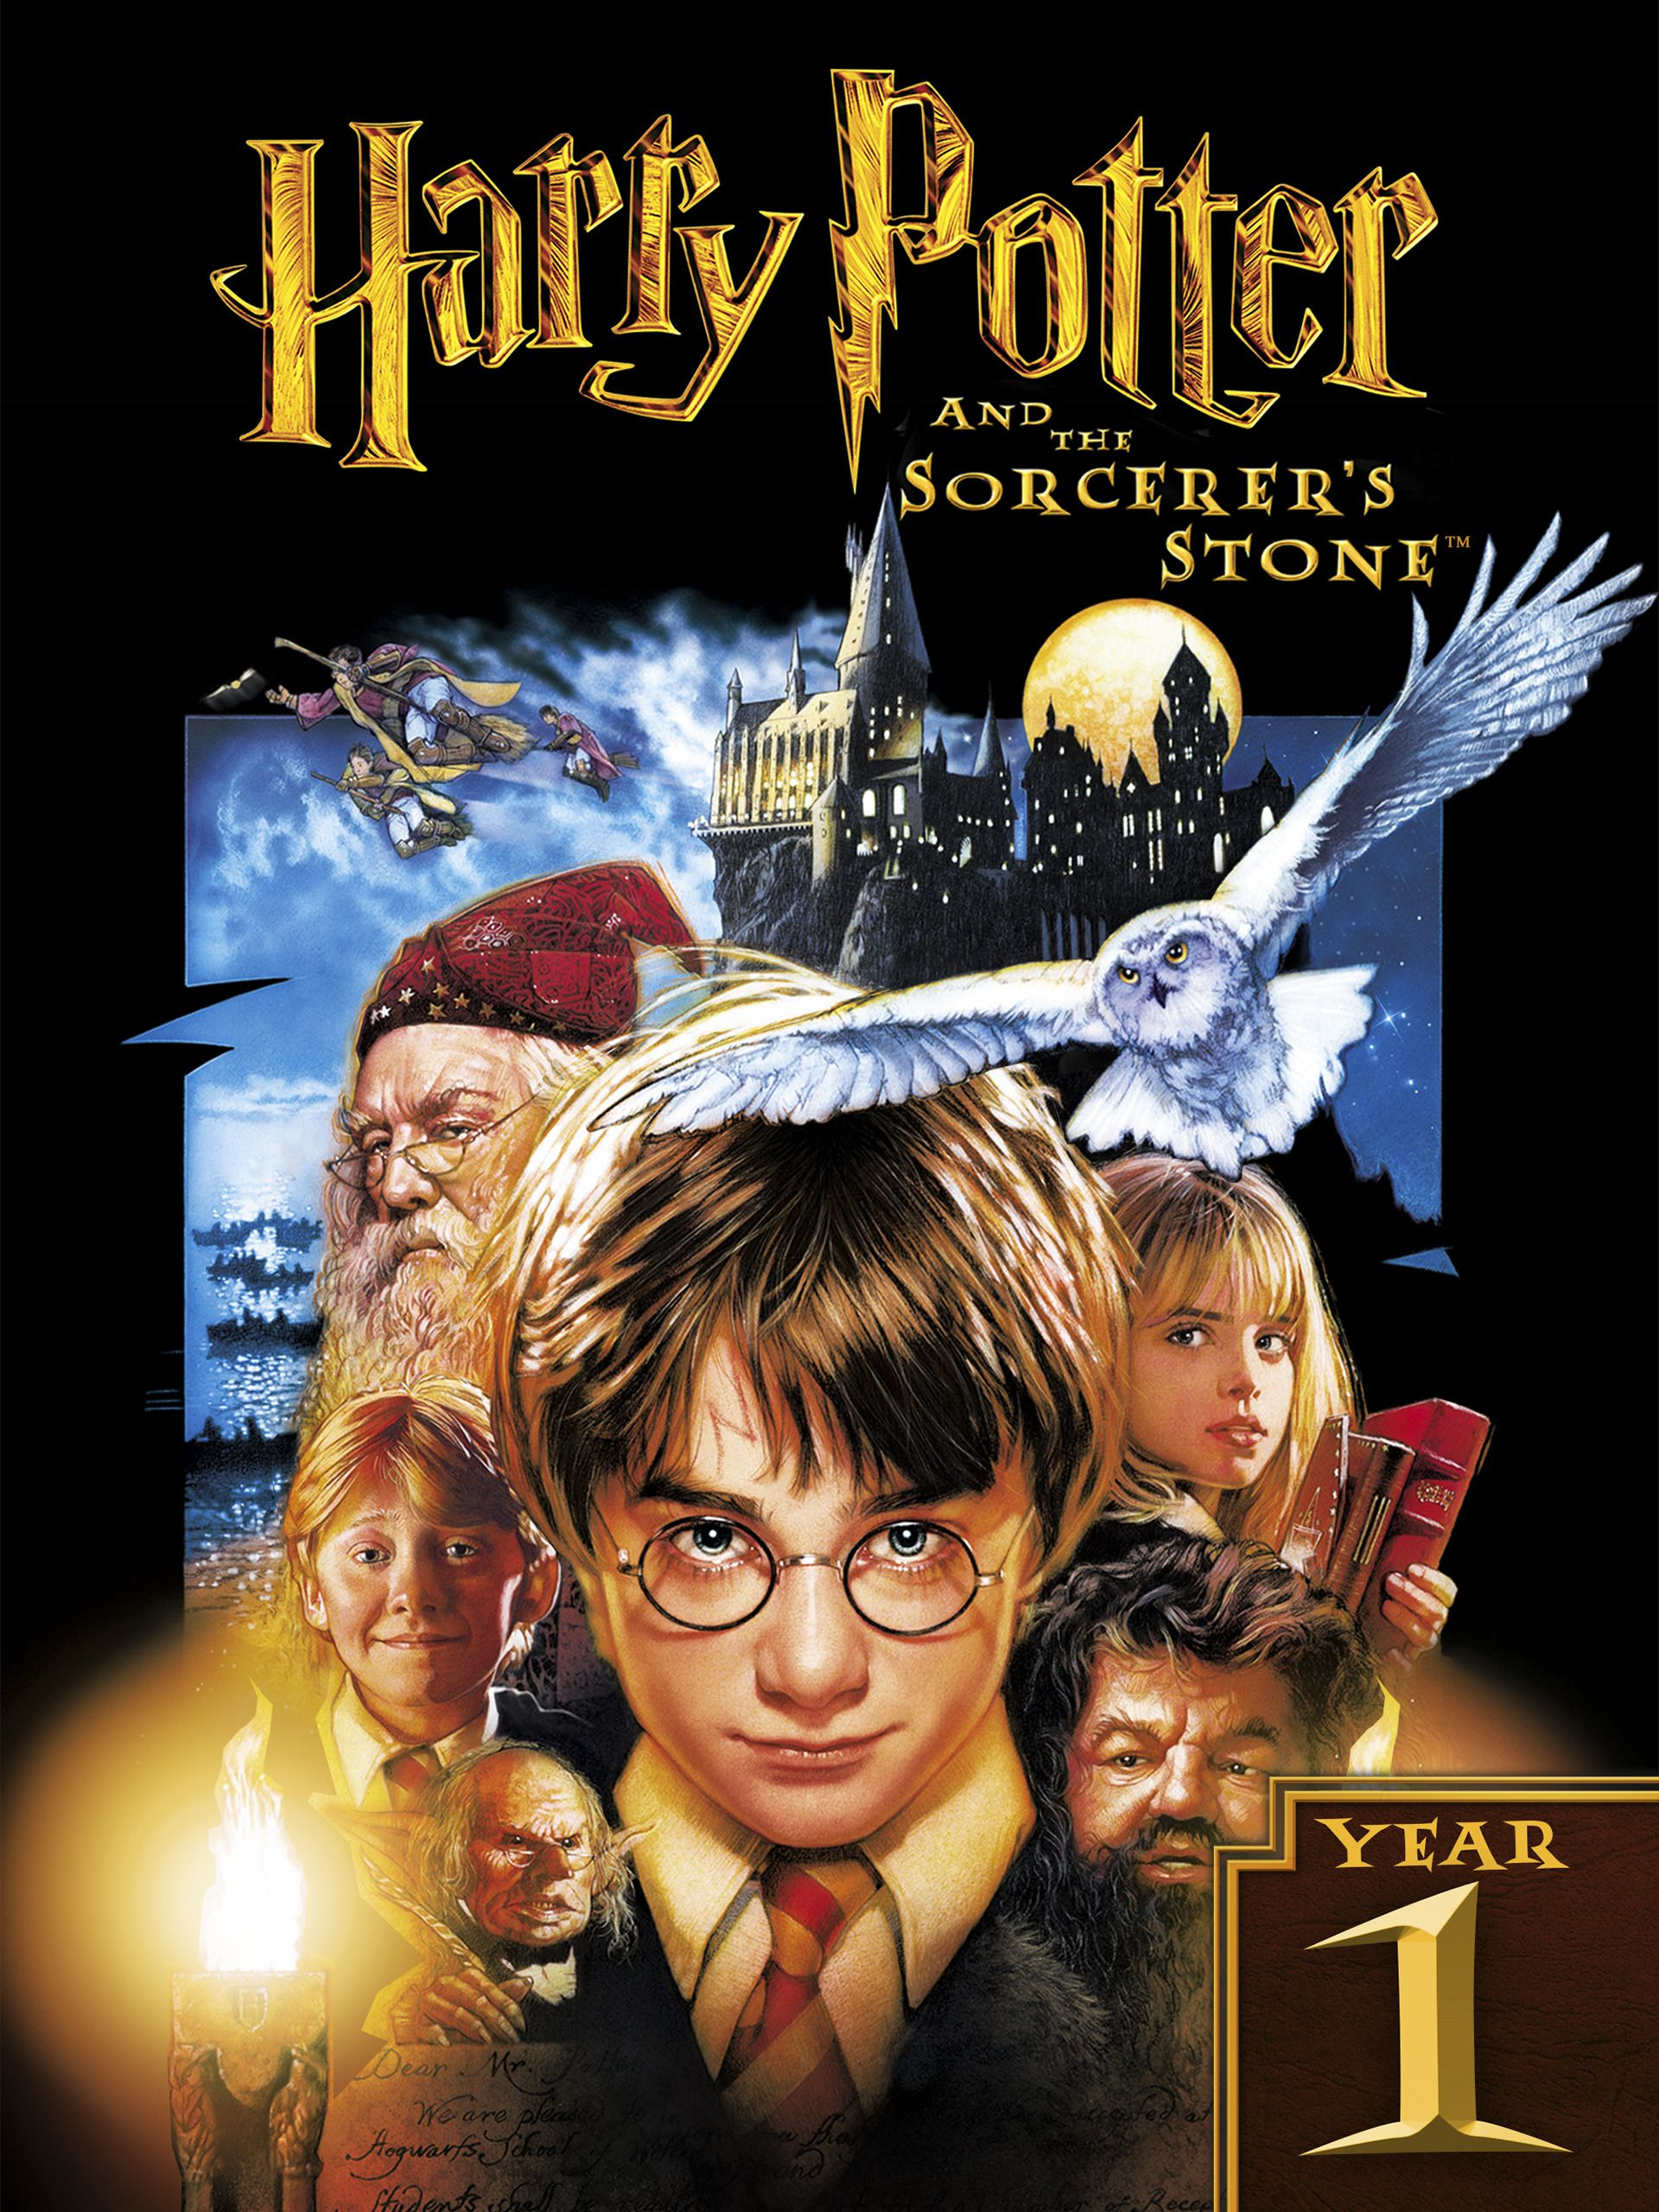 Watch Harry Potter and the Sorcerer's Stone online - Prime Video